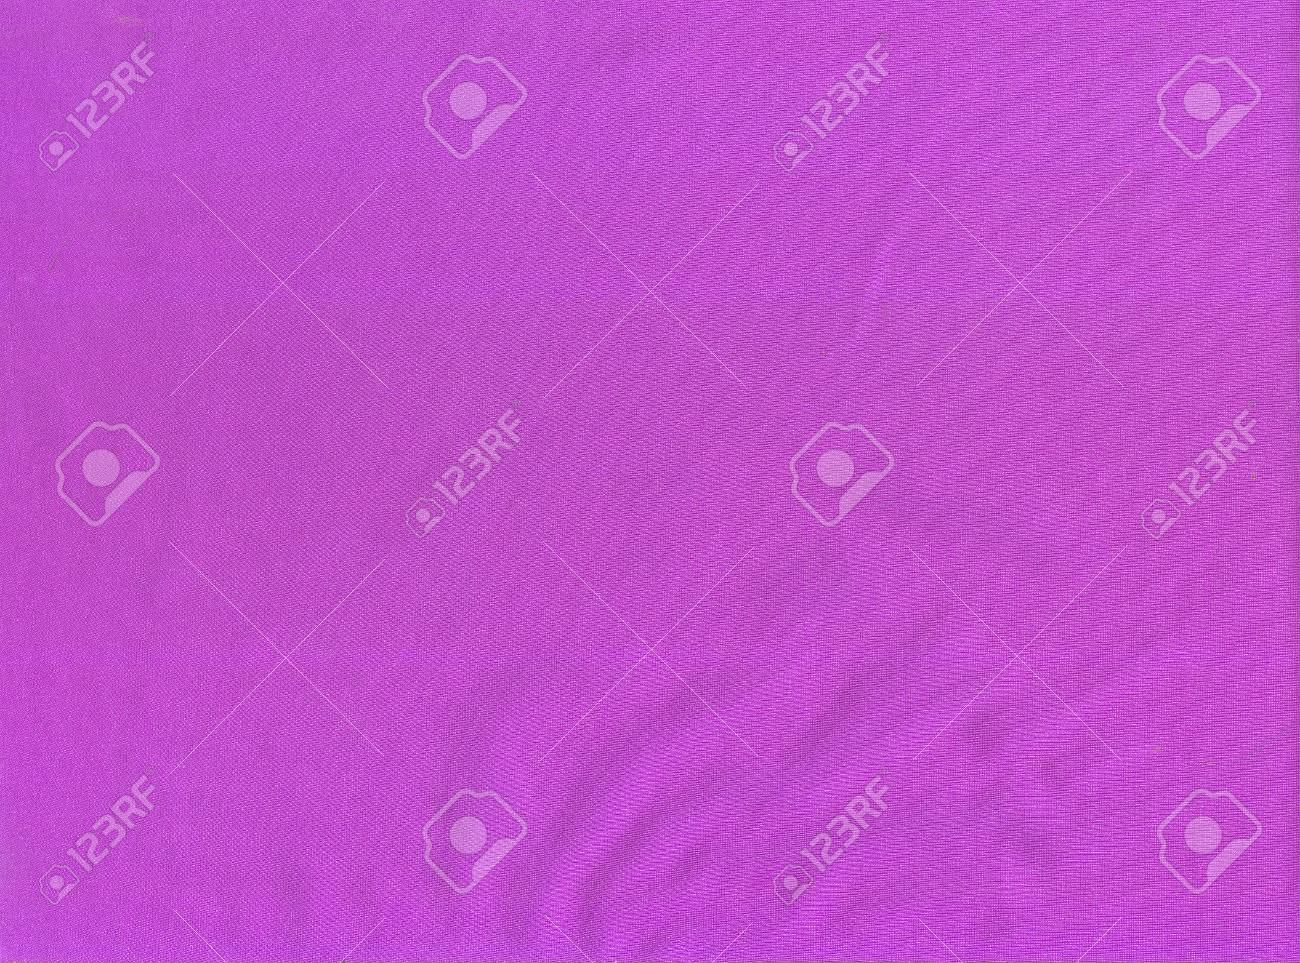 Elastic Fabric Texture Texture Elastic Fabric Supplex